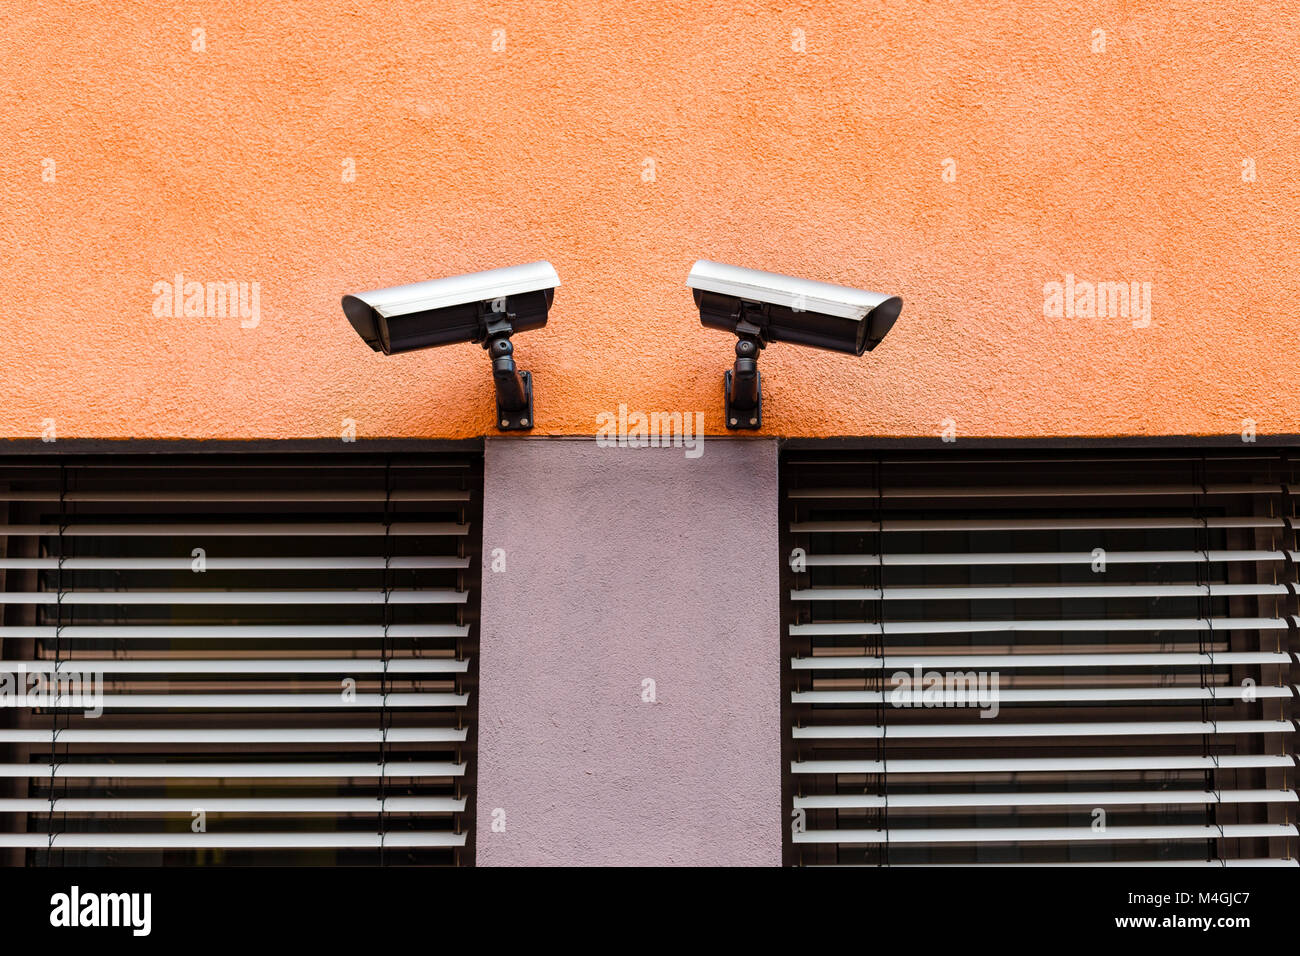 Surveilance cameras for observation on a facility wall, to protect and alarm, 2017. - Stock Image